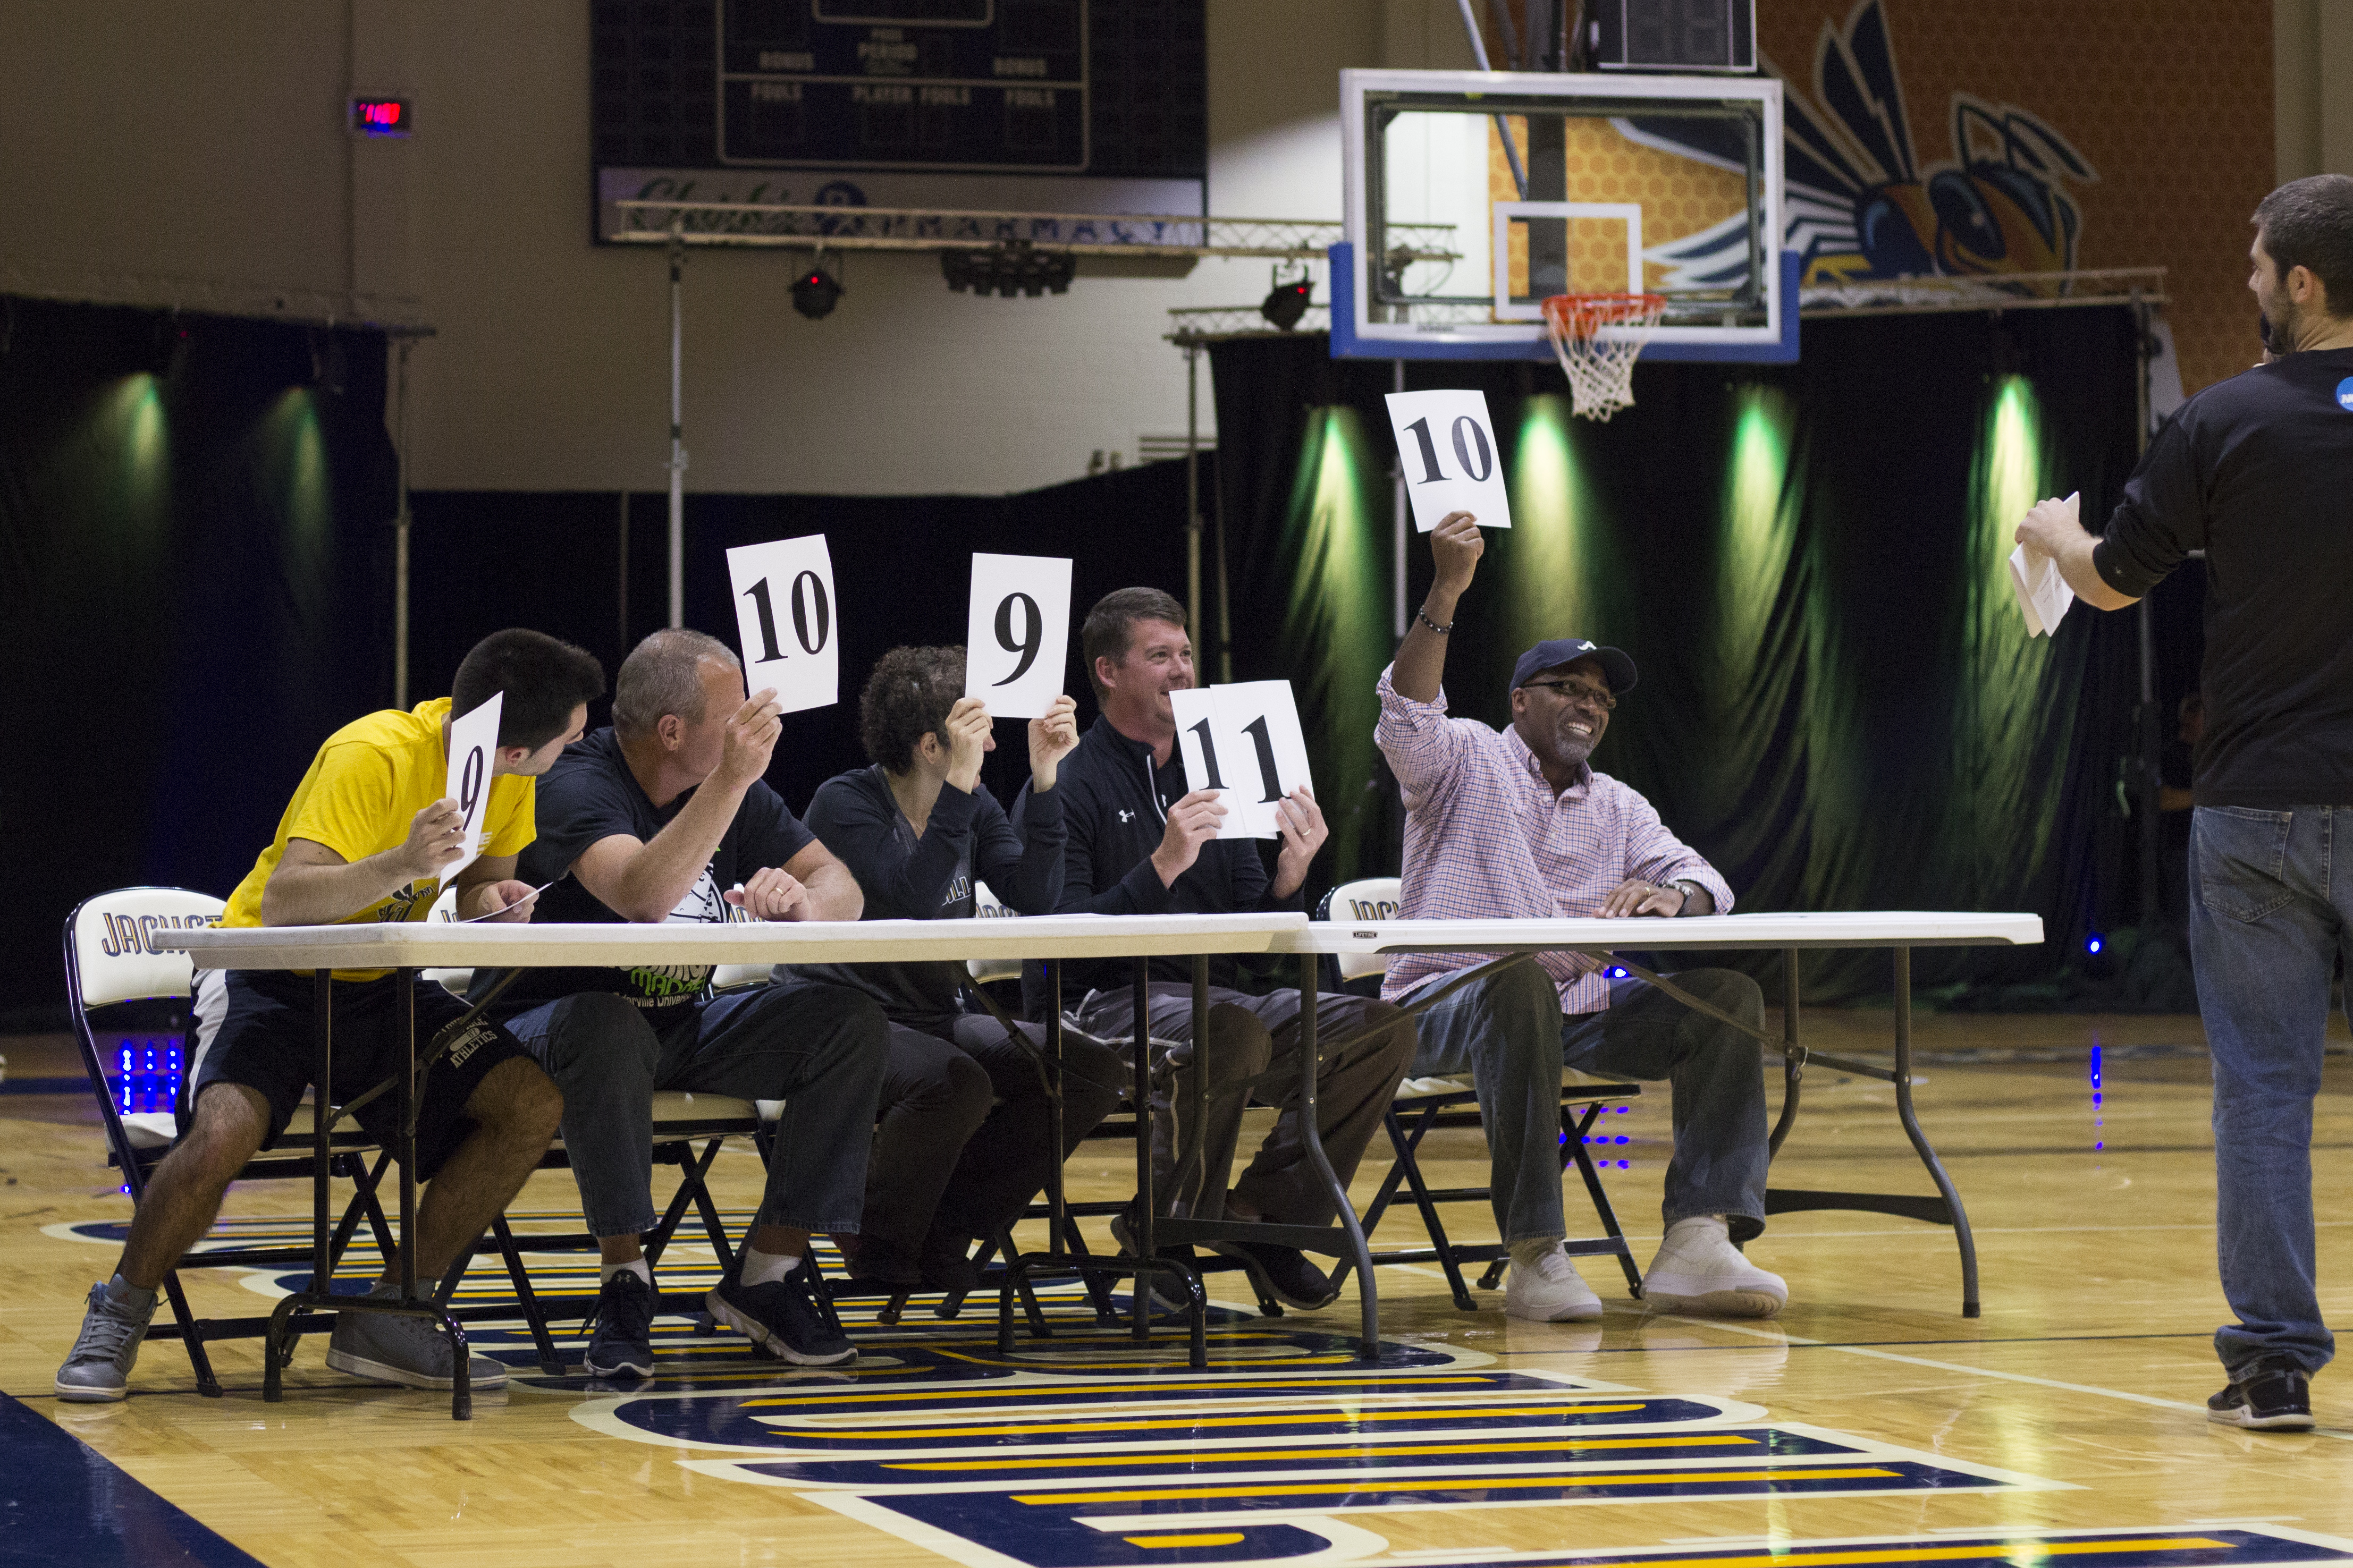 Judges rate each of the three contestant's dunking performance.